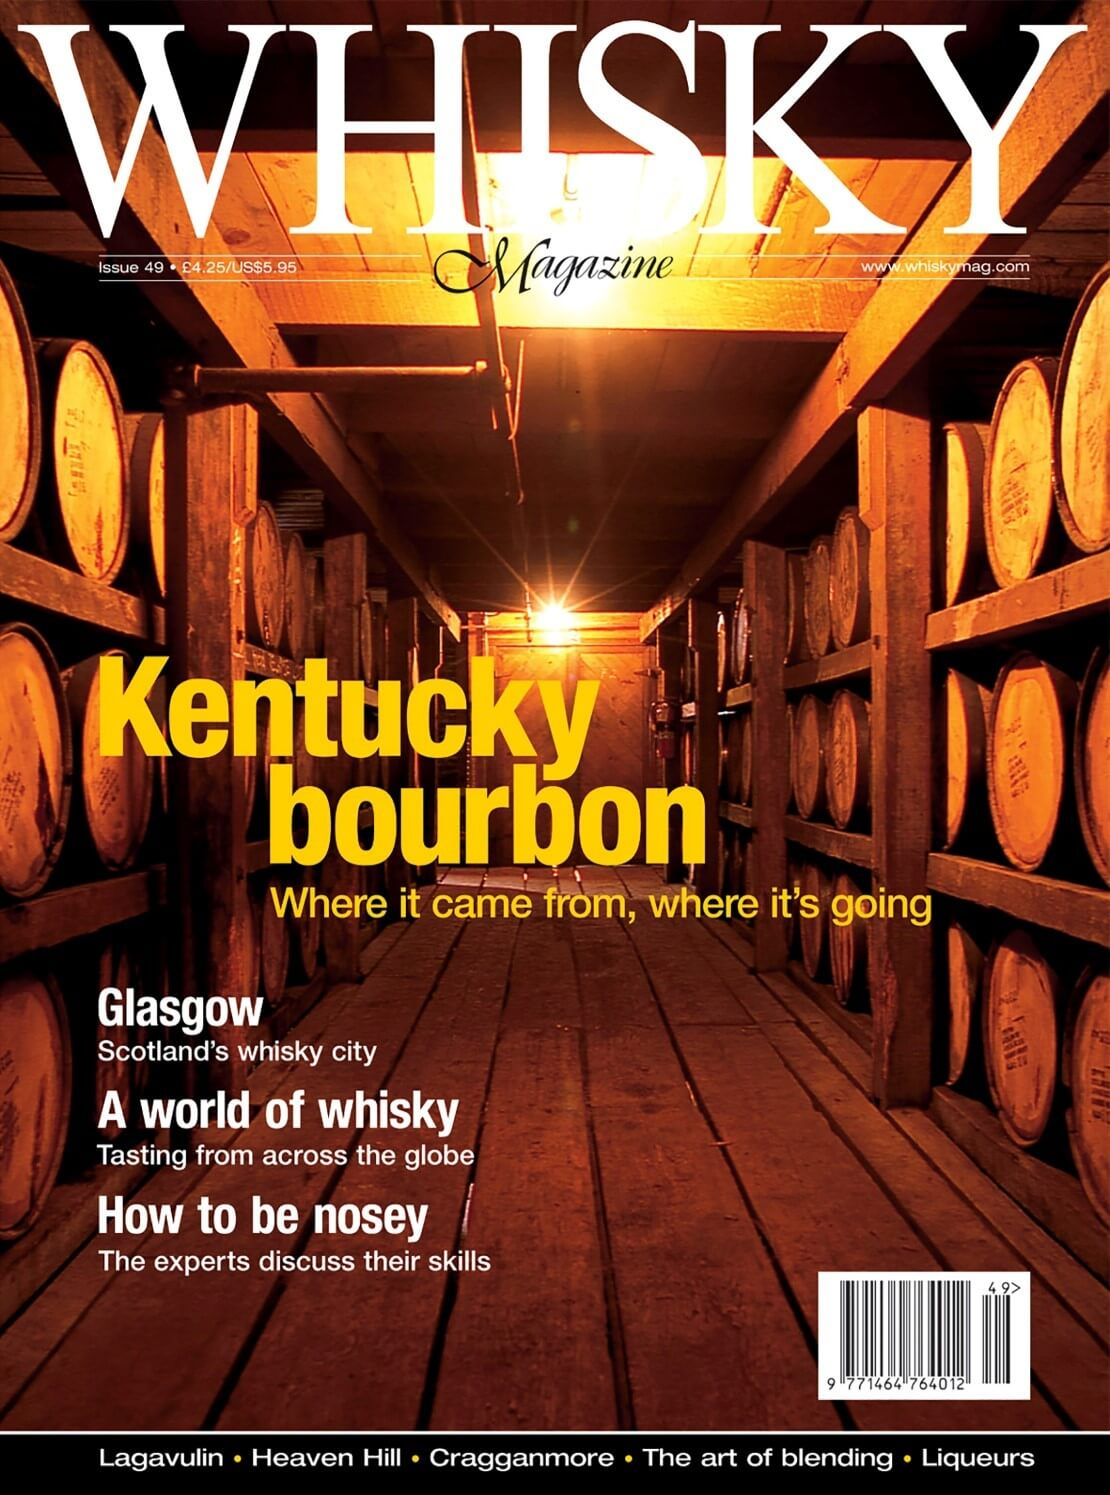 Kentucky Bourbon Glasgow Scotland's whisky city Whisky tasting across the globe How to be nosey...